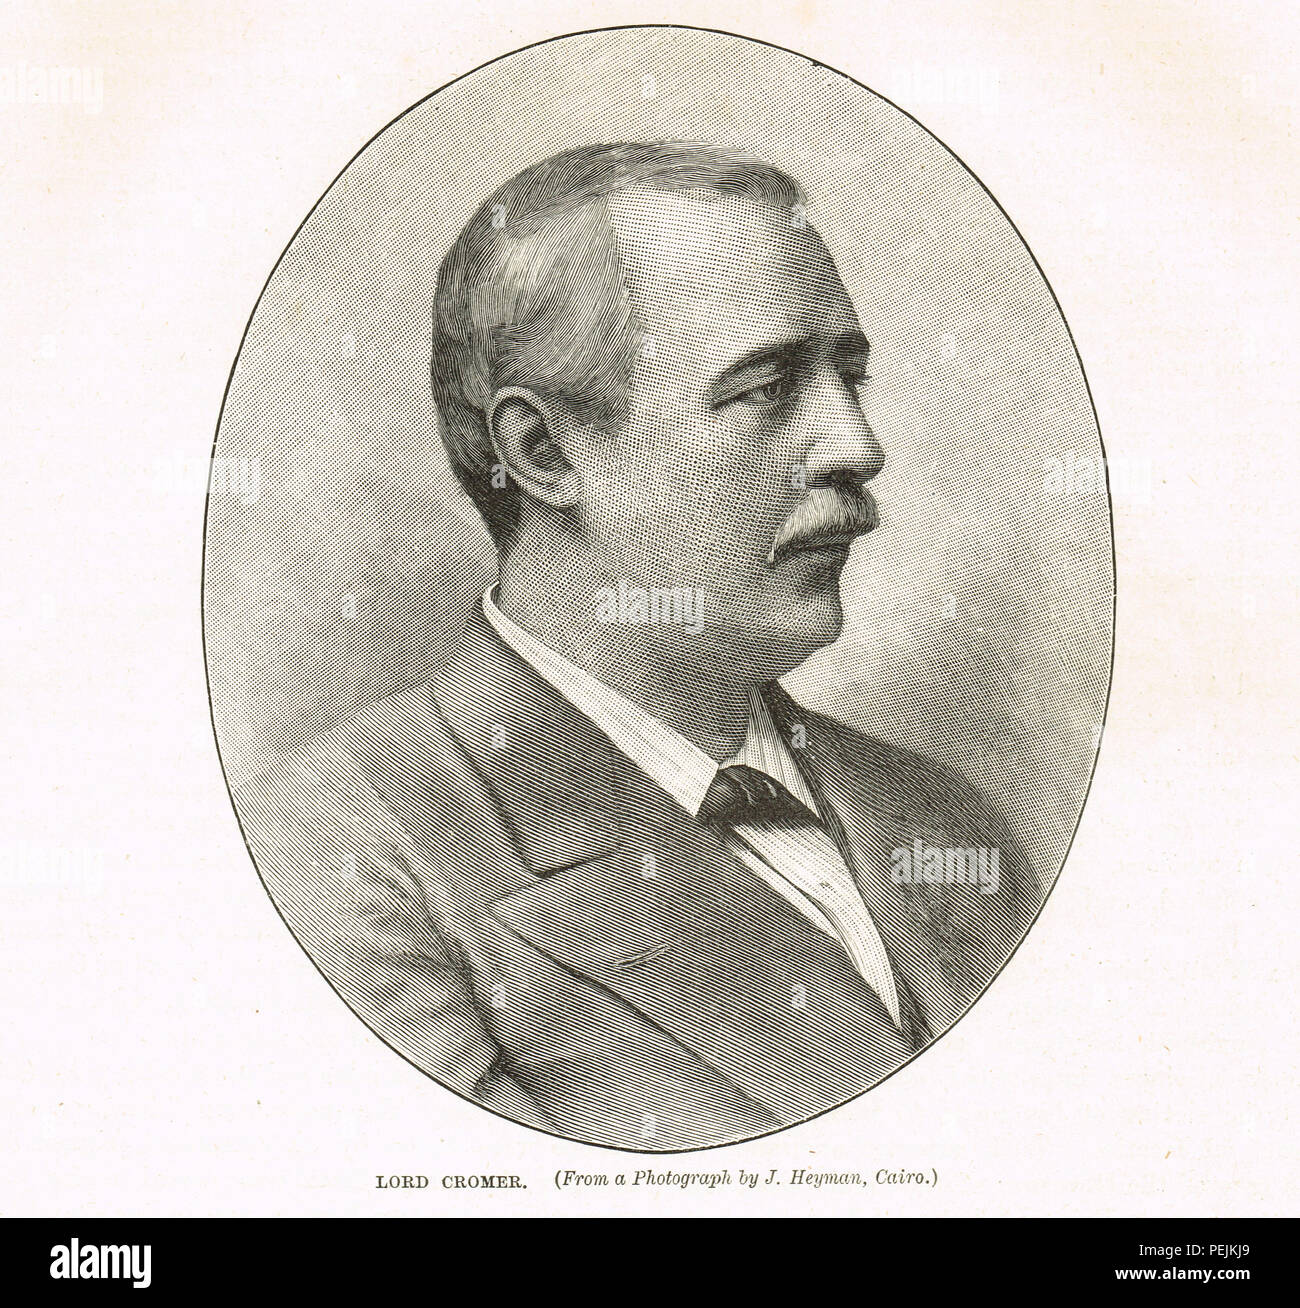 Evelyn Baring, 1st Earl of Cromer, British statesman, diplomat and colonial administrator, consul-general in Egypt from 1883 to 1907, during the British occupation prompted by the 'Urabi revolt - Stock Image